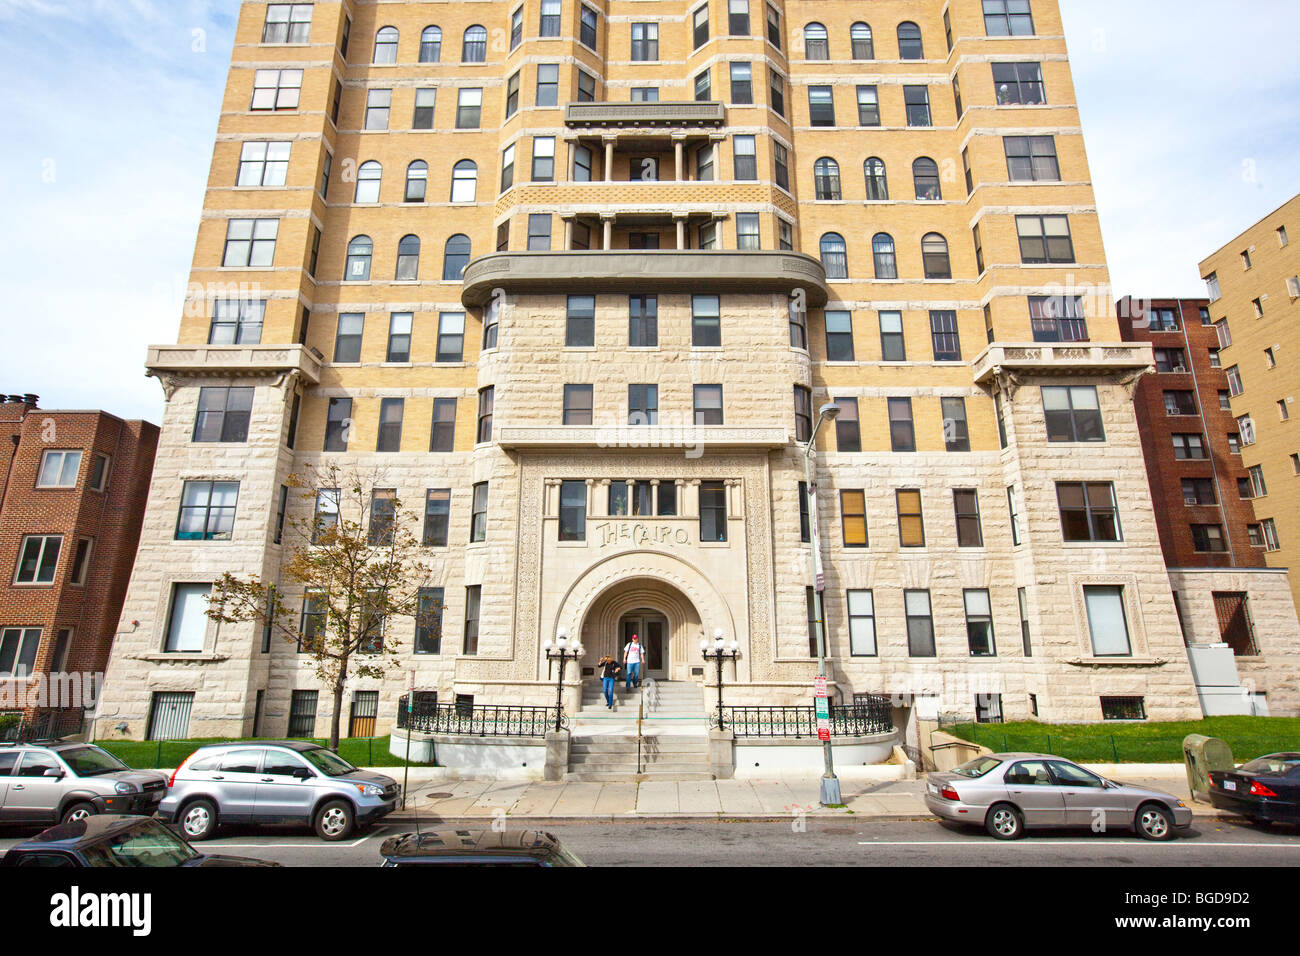 Perfect The Cairo Apartment Building In Dupont Circle In Washington DC Idea